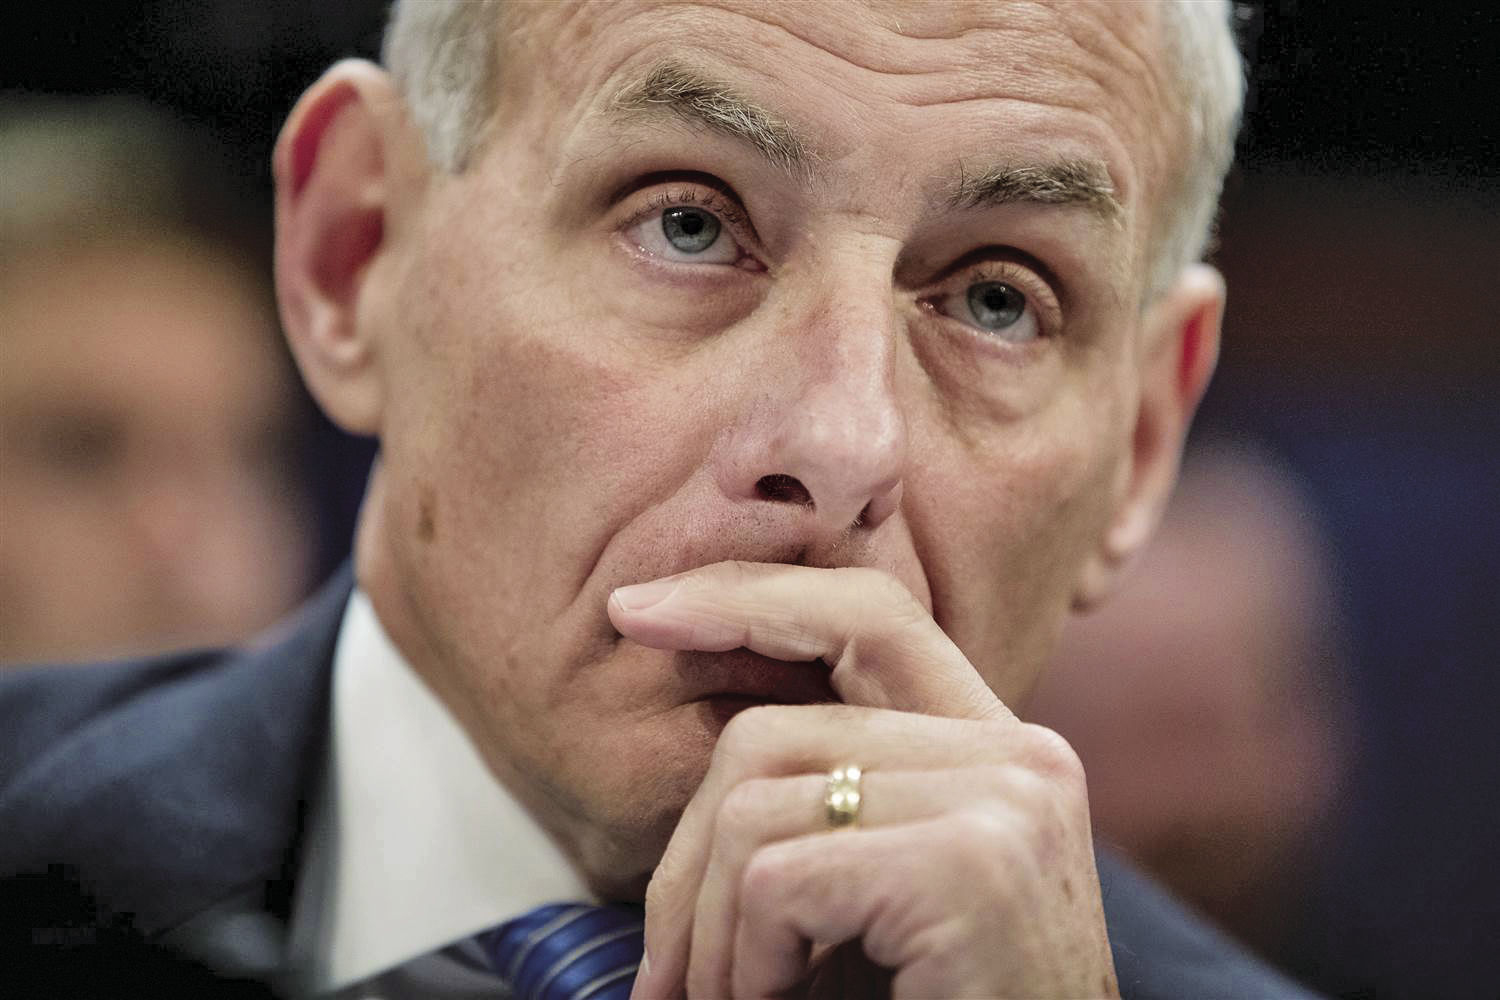 Kelly's comments have earned criticism from many historians.